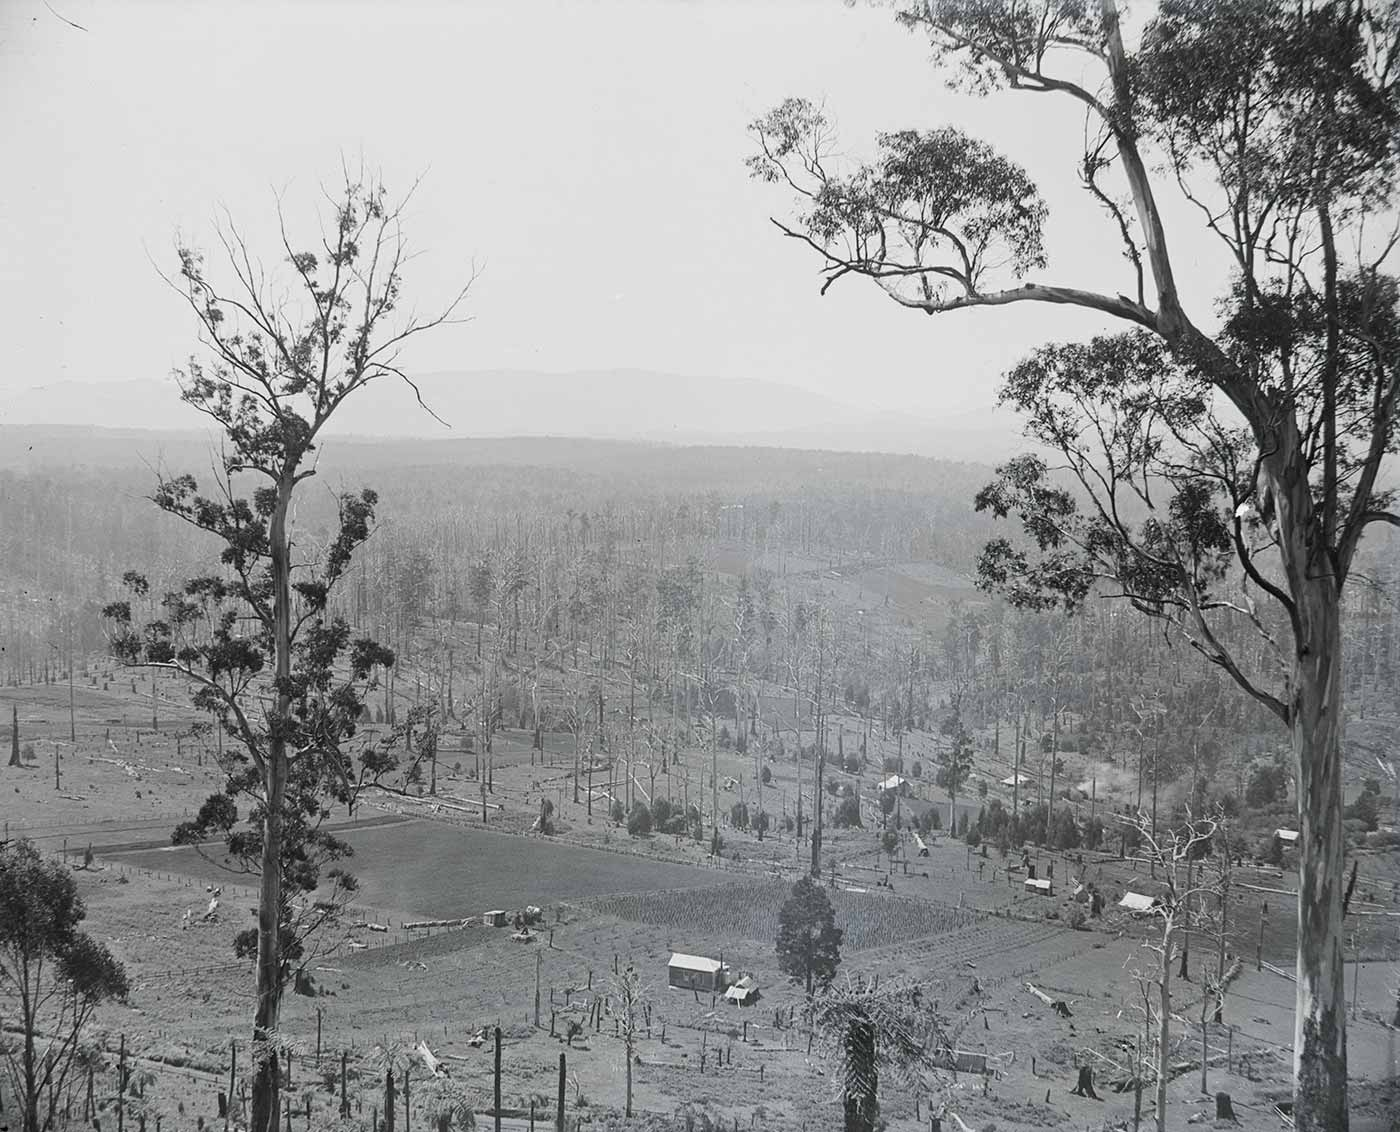 A photographic glass plate negative showing a sceney photographed from a high vantage point, looking down on buildings and open fields. Surrounding the open fields are tall leafless trees. There are two prominent trees in the foreground. There is a slight yellow discolouration near the centre of the image. - click to view larger image